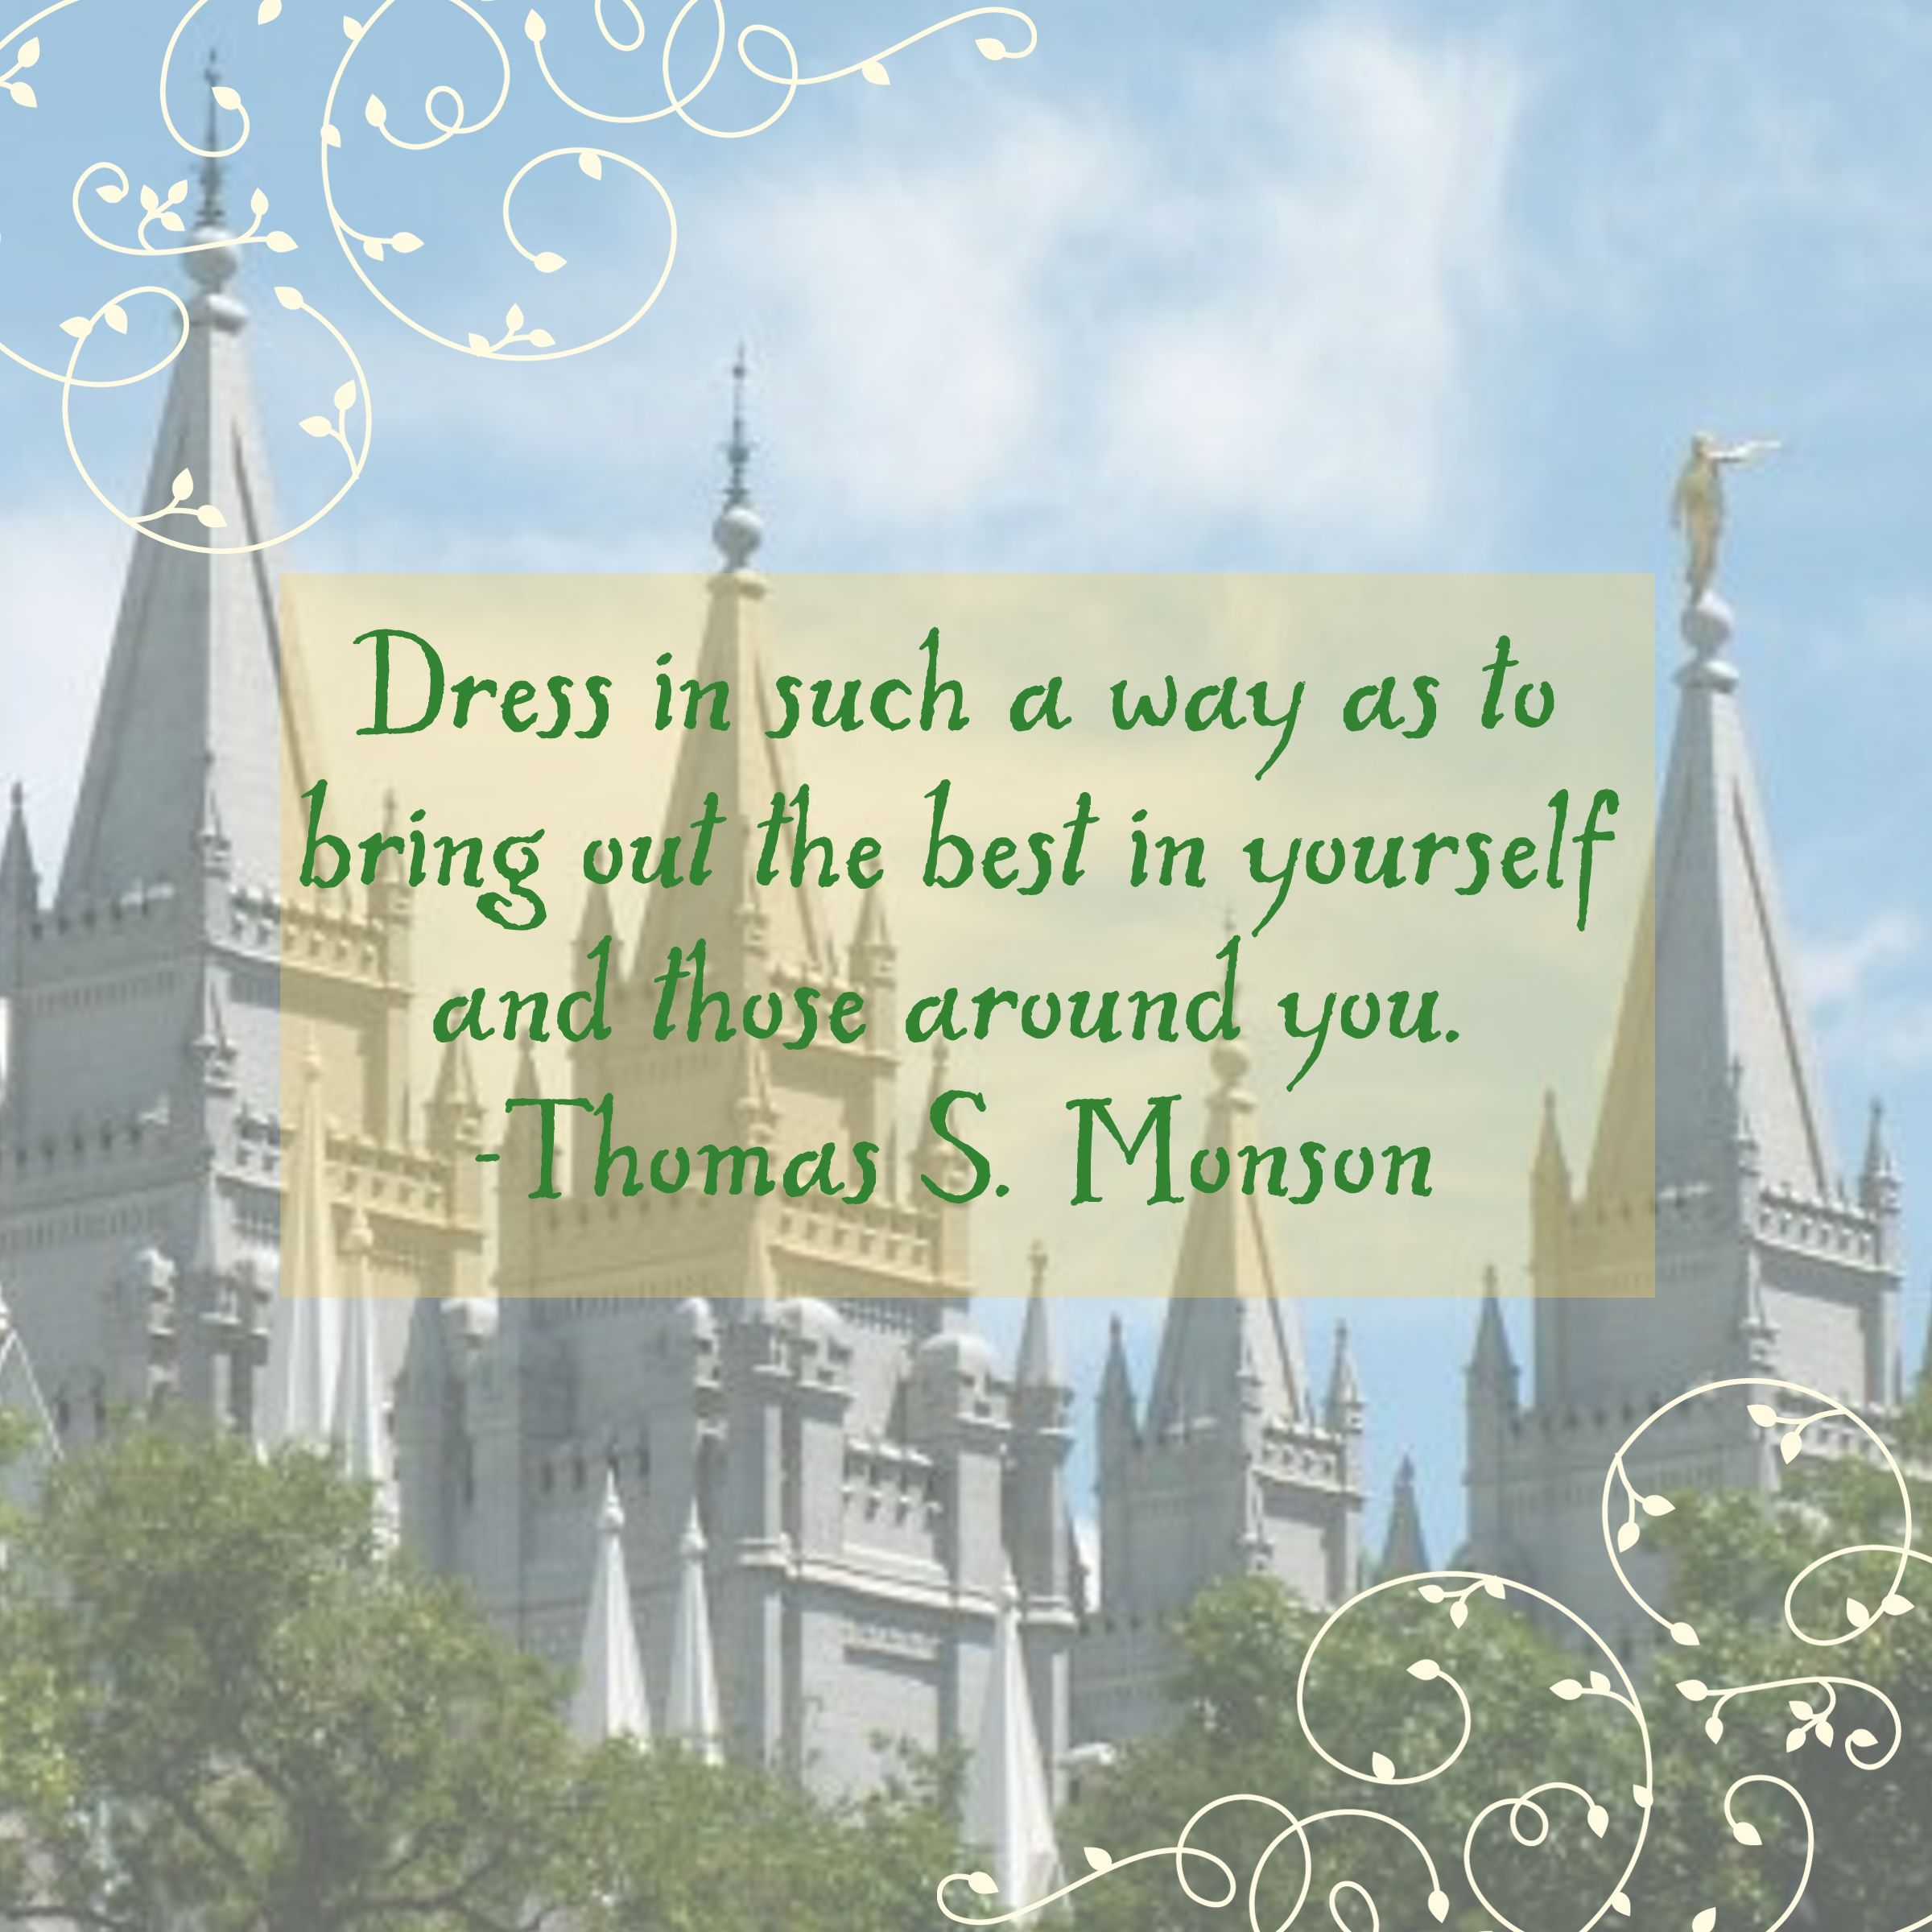 Lds missionary quotes or thoughts quotesgram - Modest Dress Quotes Quotesgram